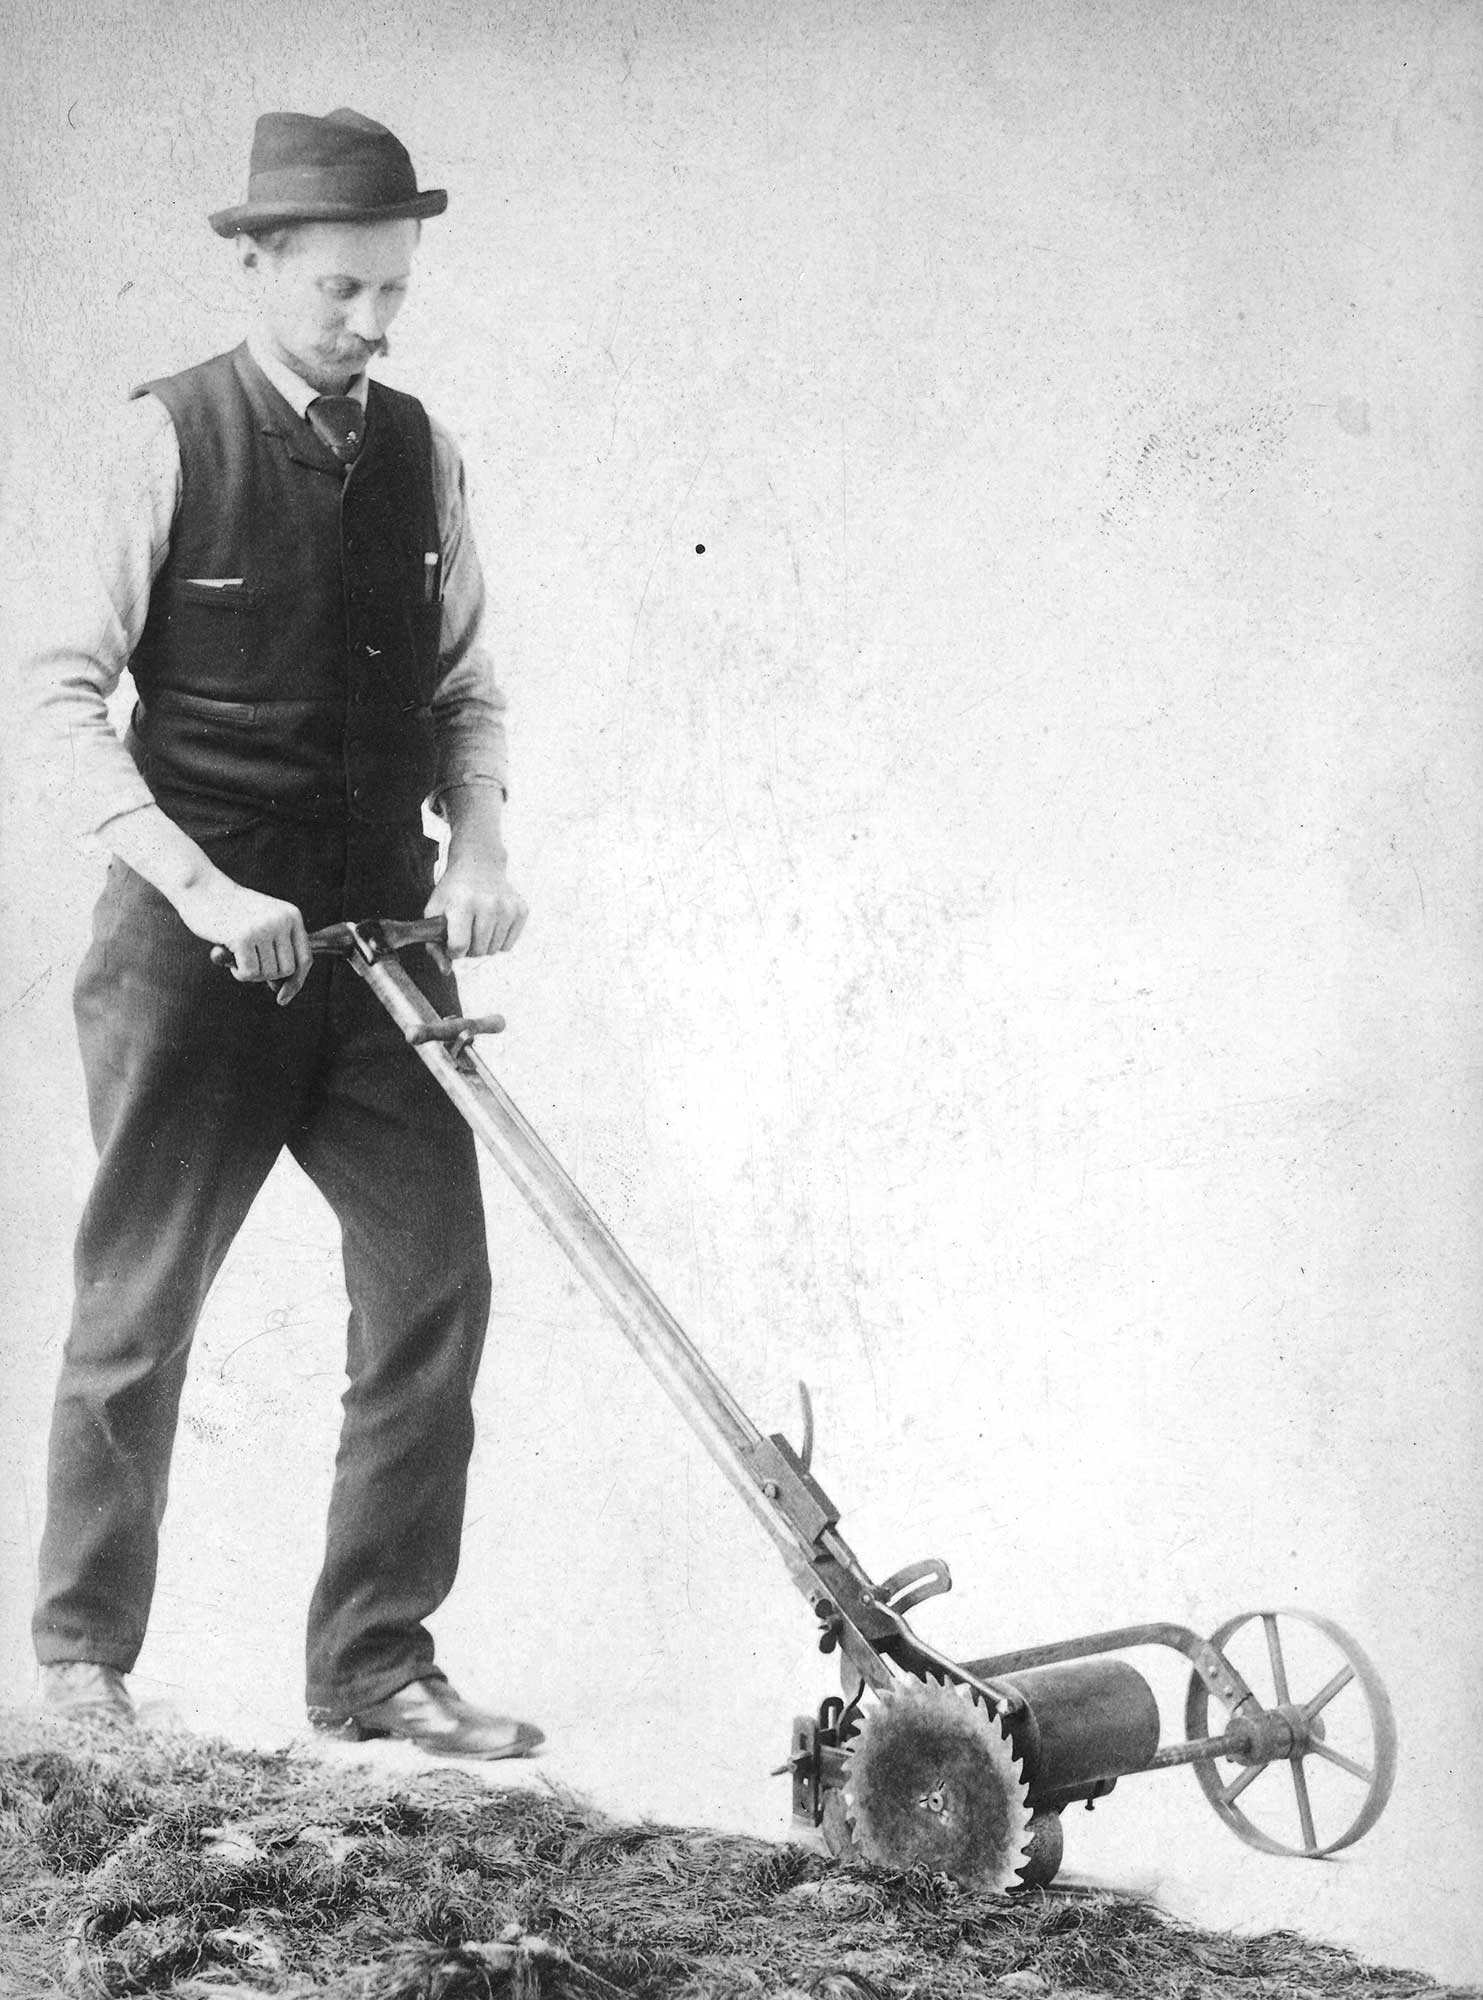 This portrait of Jensen edging the lawn shows the great pride he took in every aspect of his work. Ca. 1895, courtesy of the Johnson, Jensen, and Wheeler families.